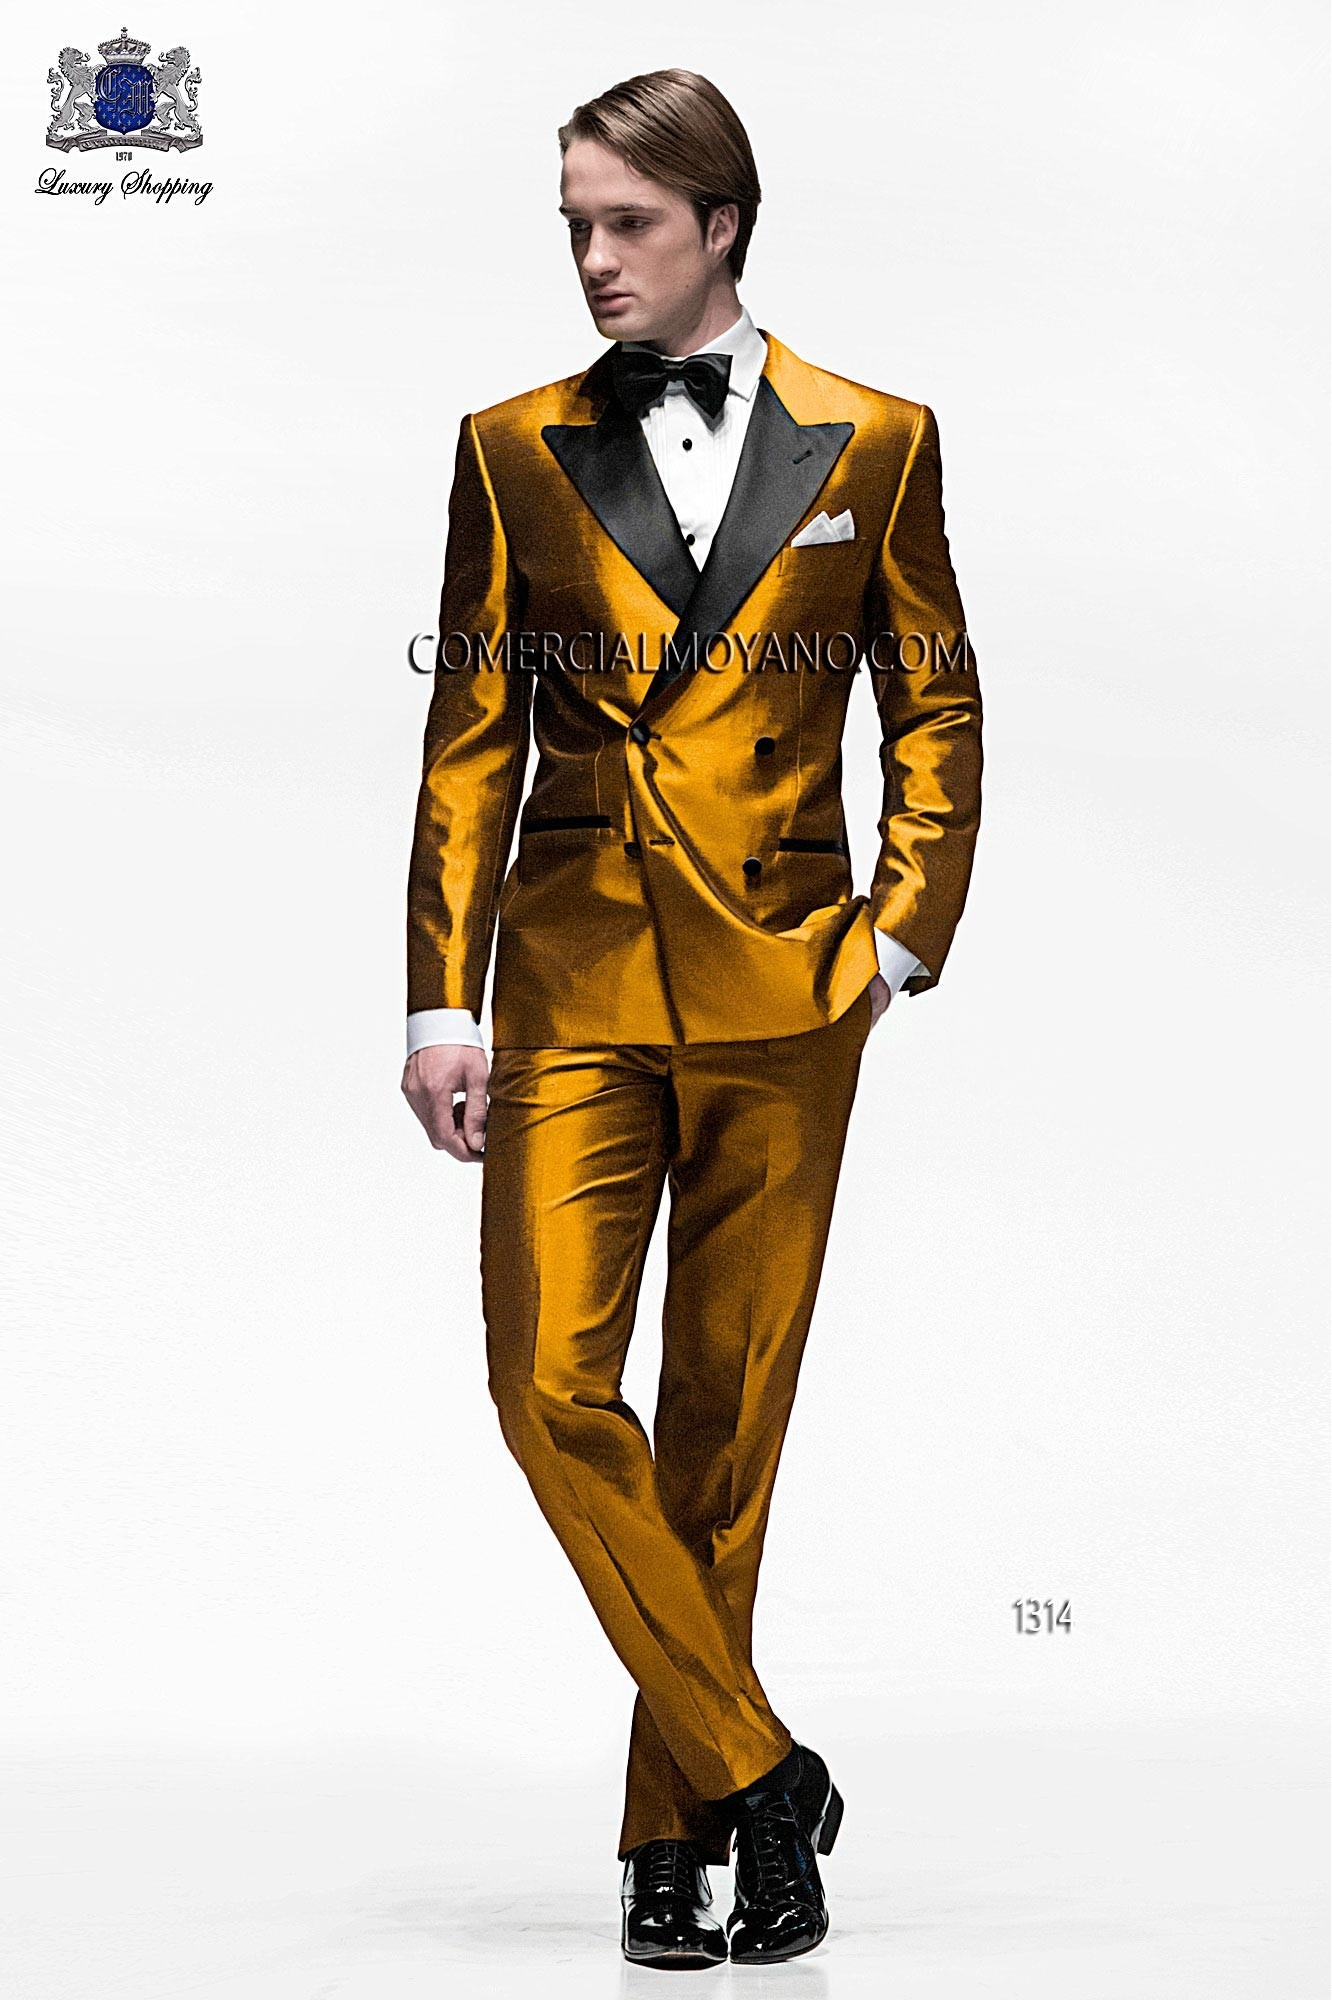 Black Tie Gold men wedding suit model 1314 Ottavio Nuccio Gala